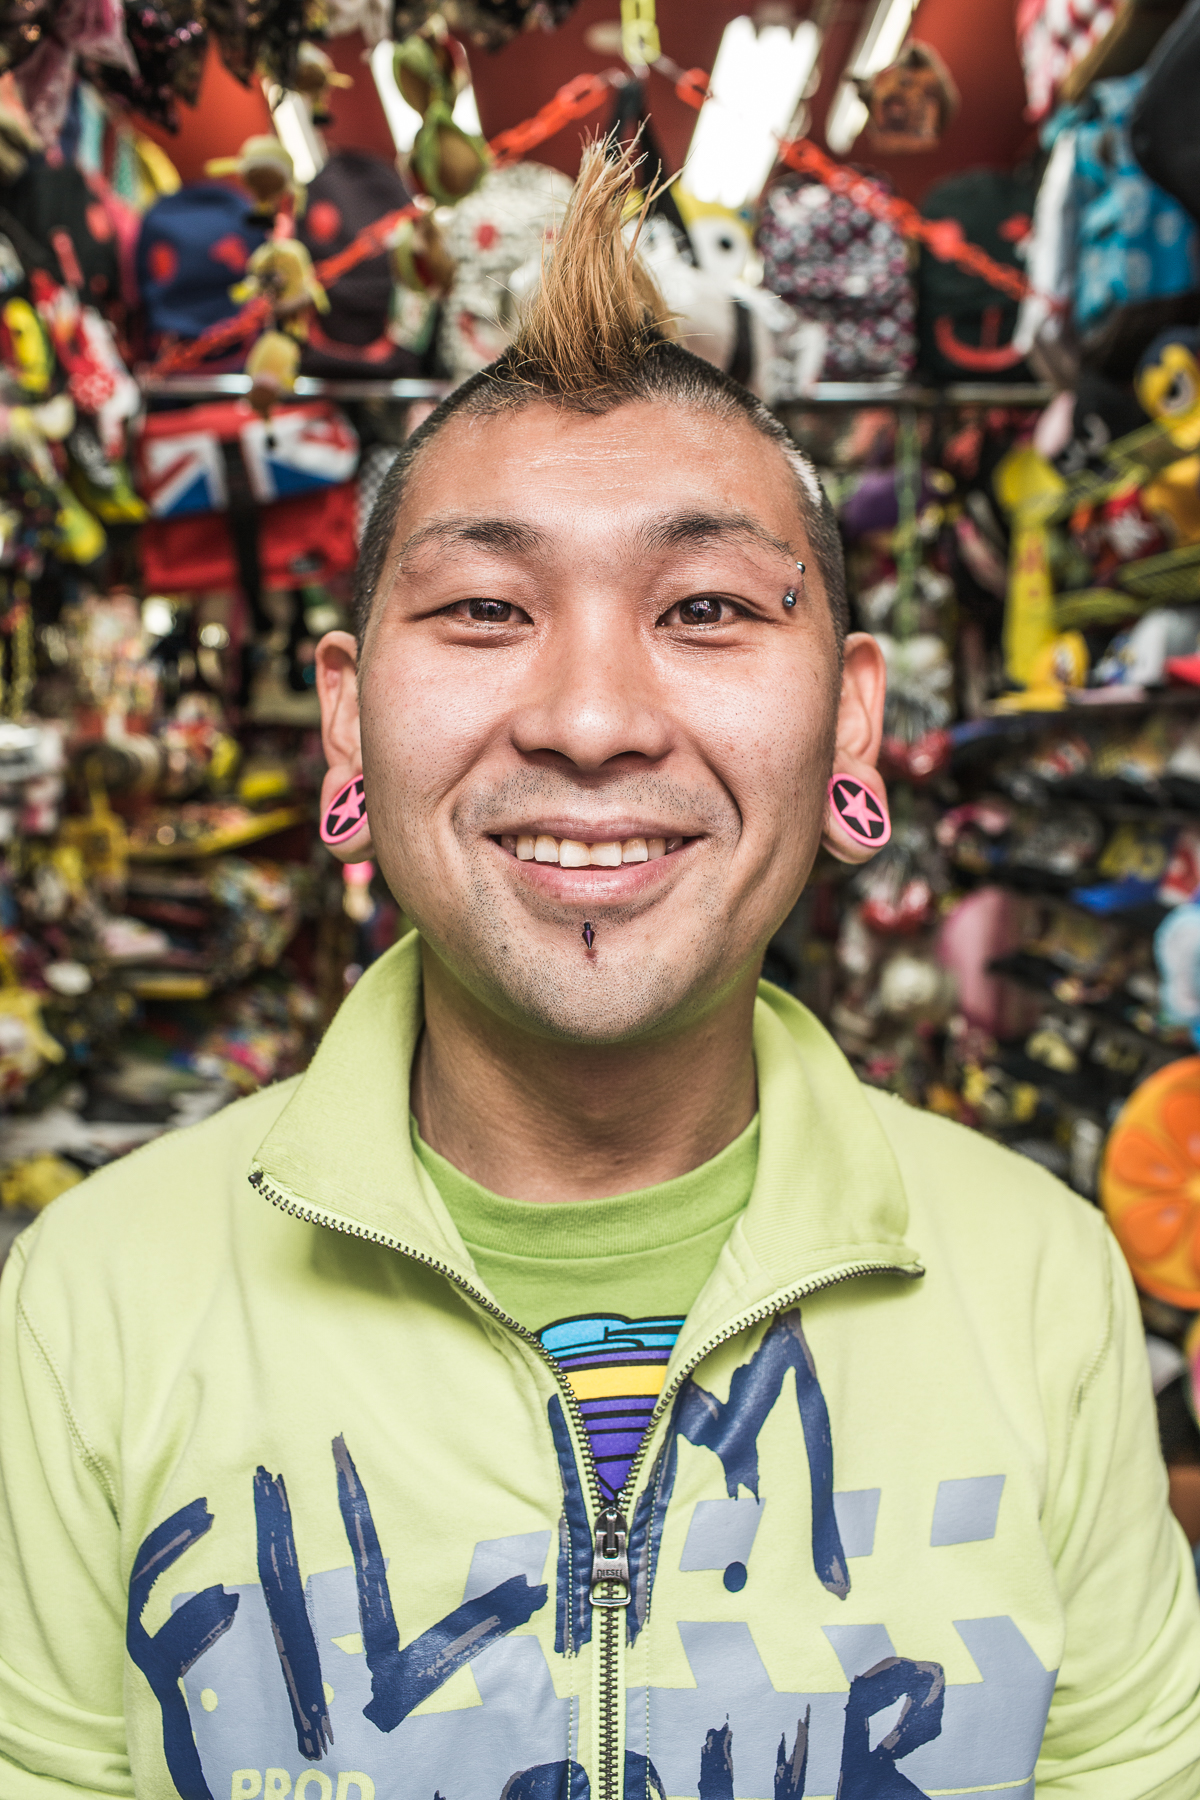 Japan - market portraits